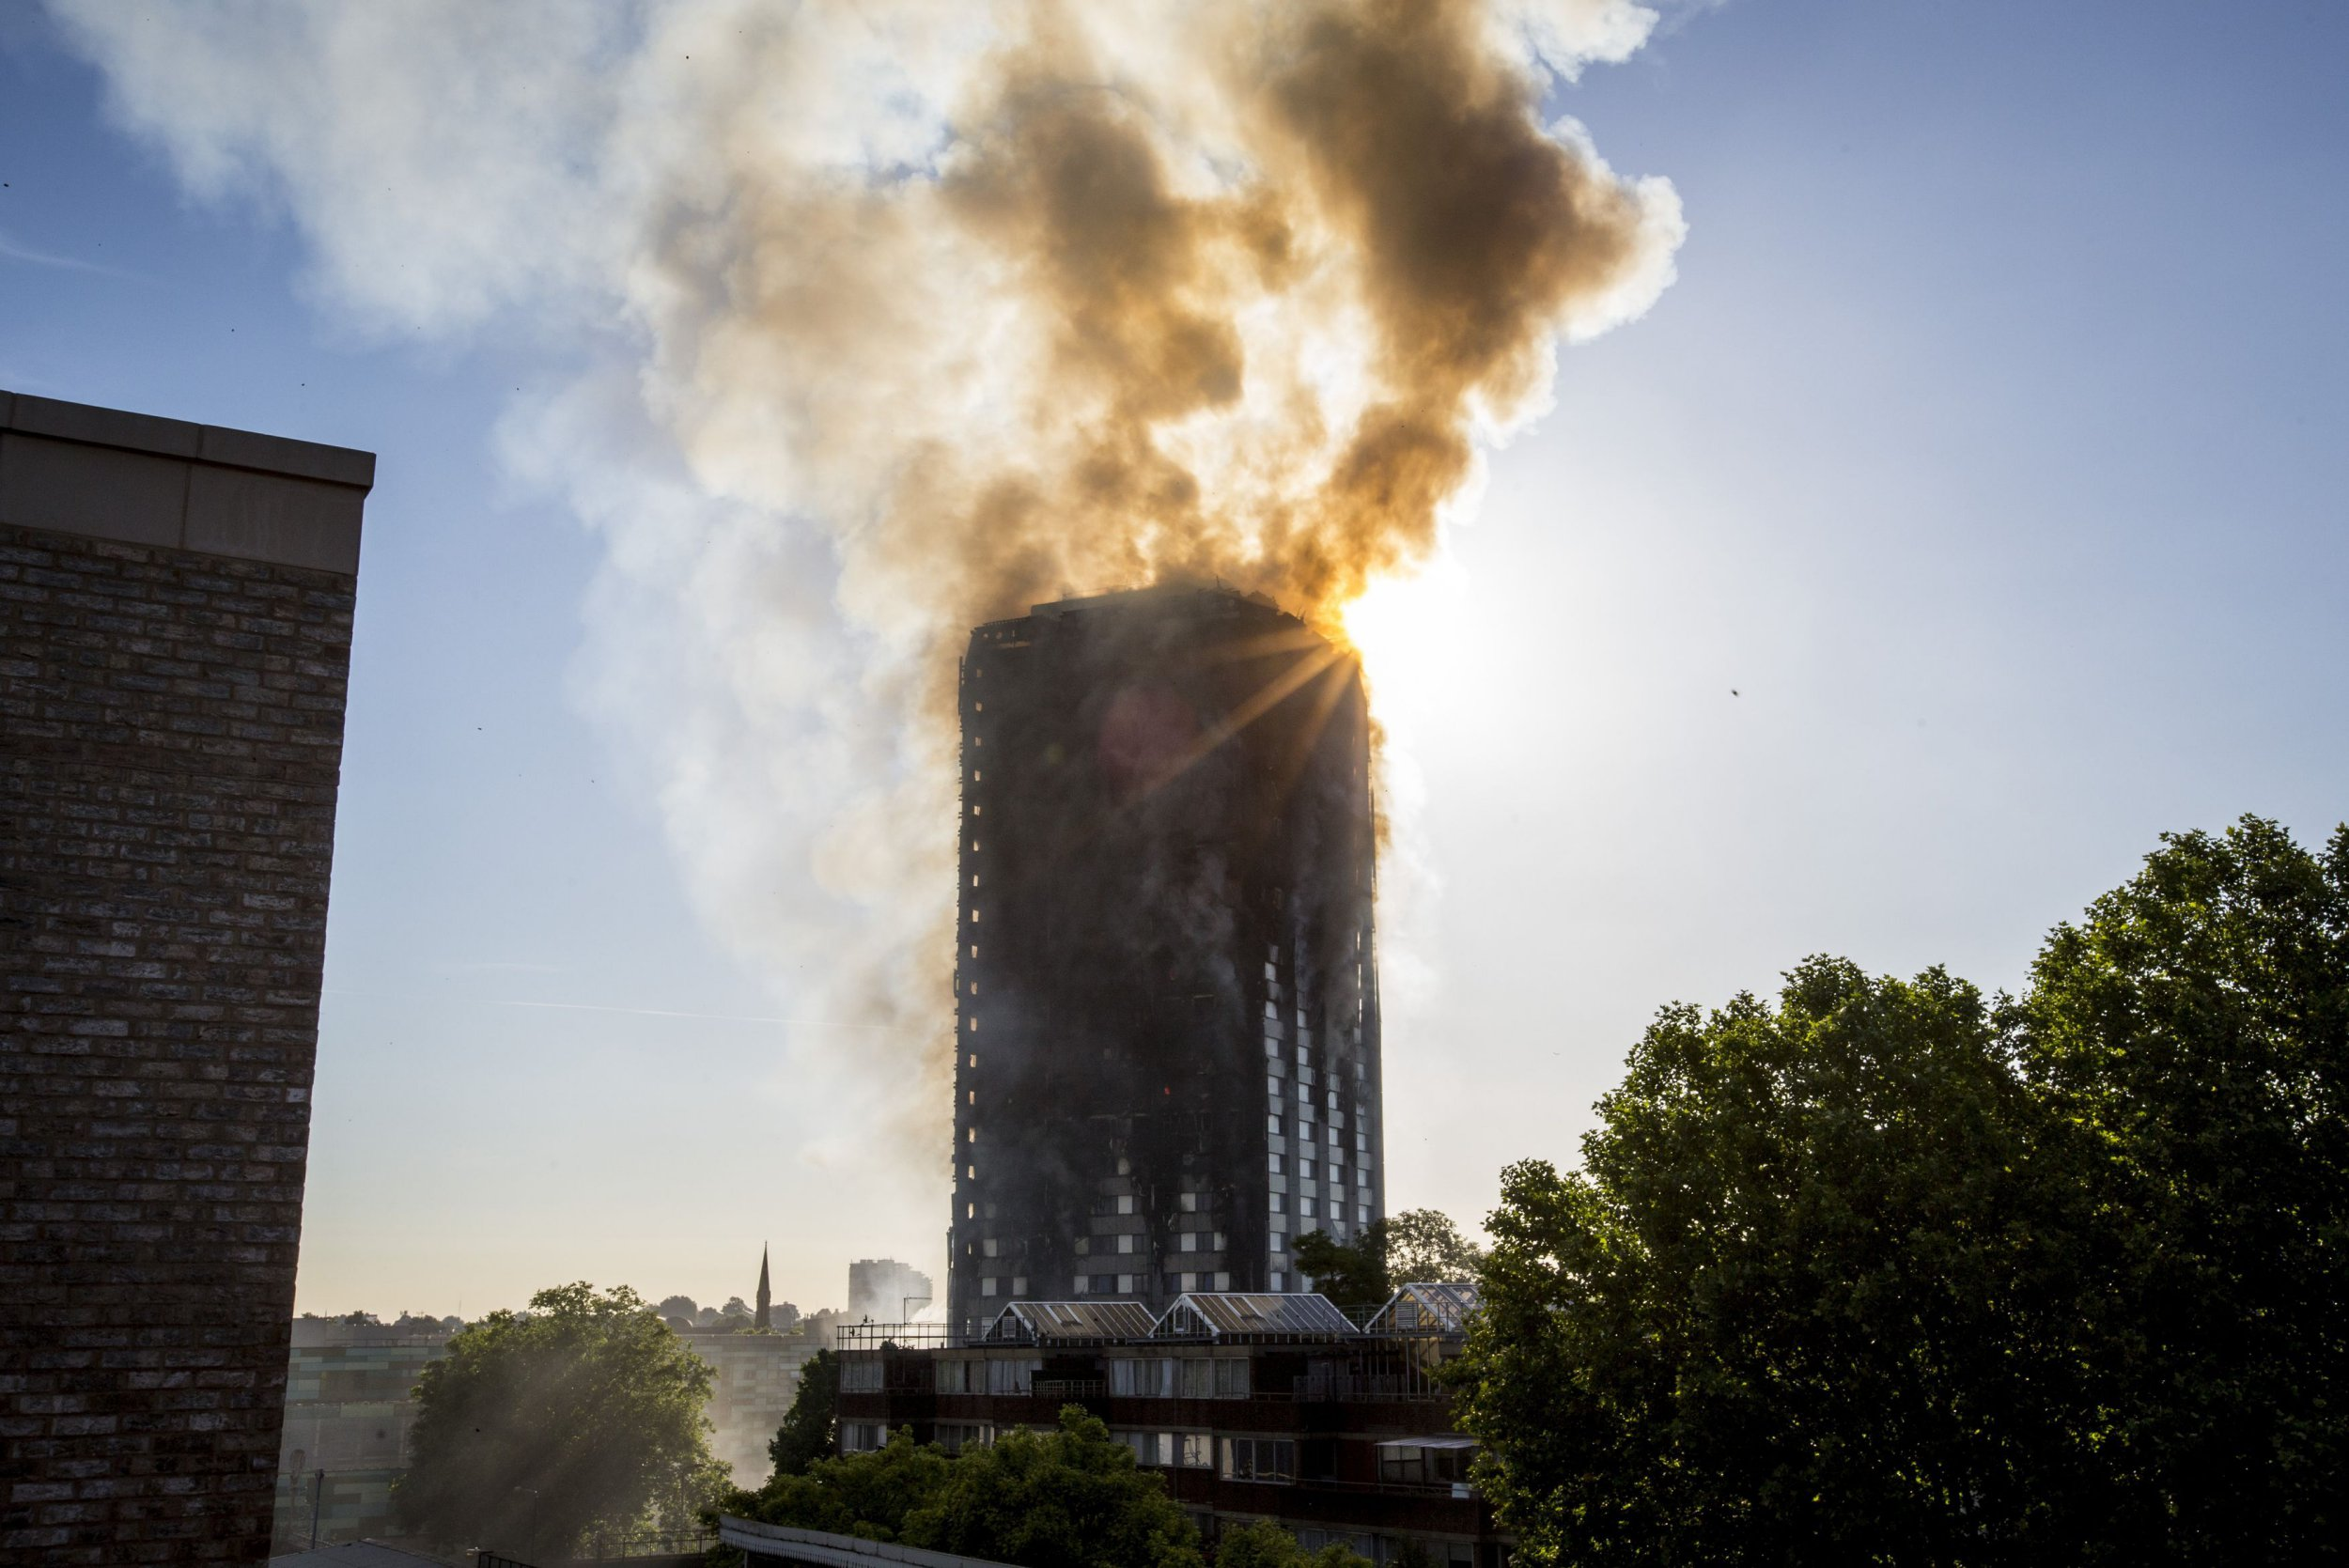 Hope for residents in Grenfell Tower fire who were awake late for Ramadan